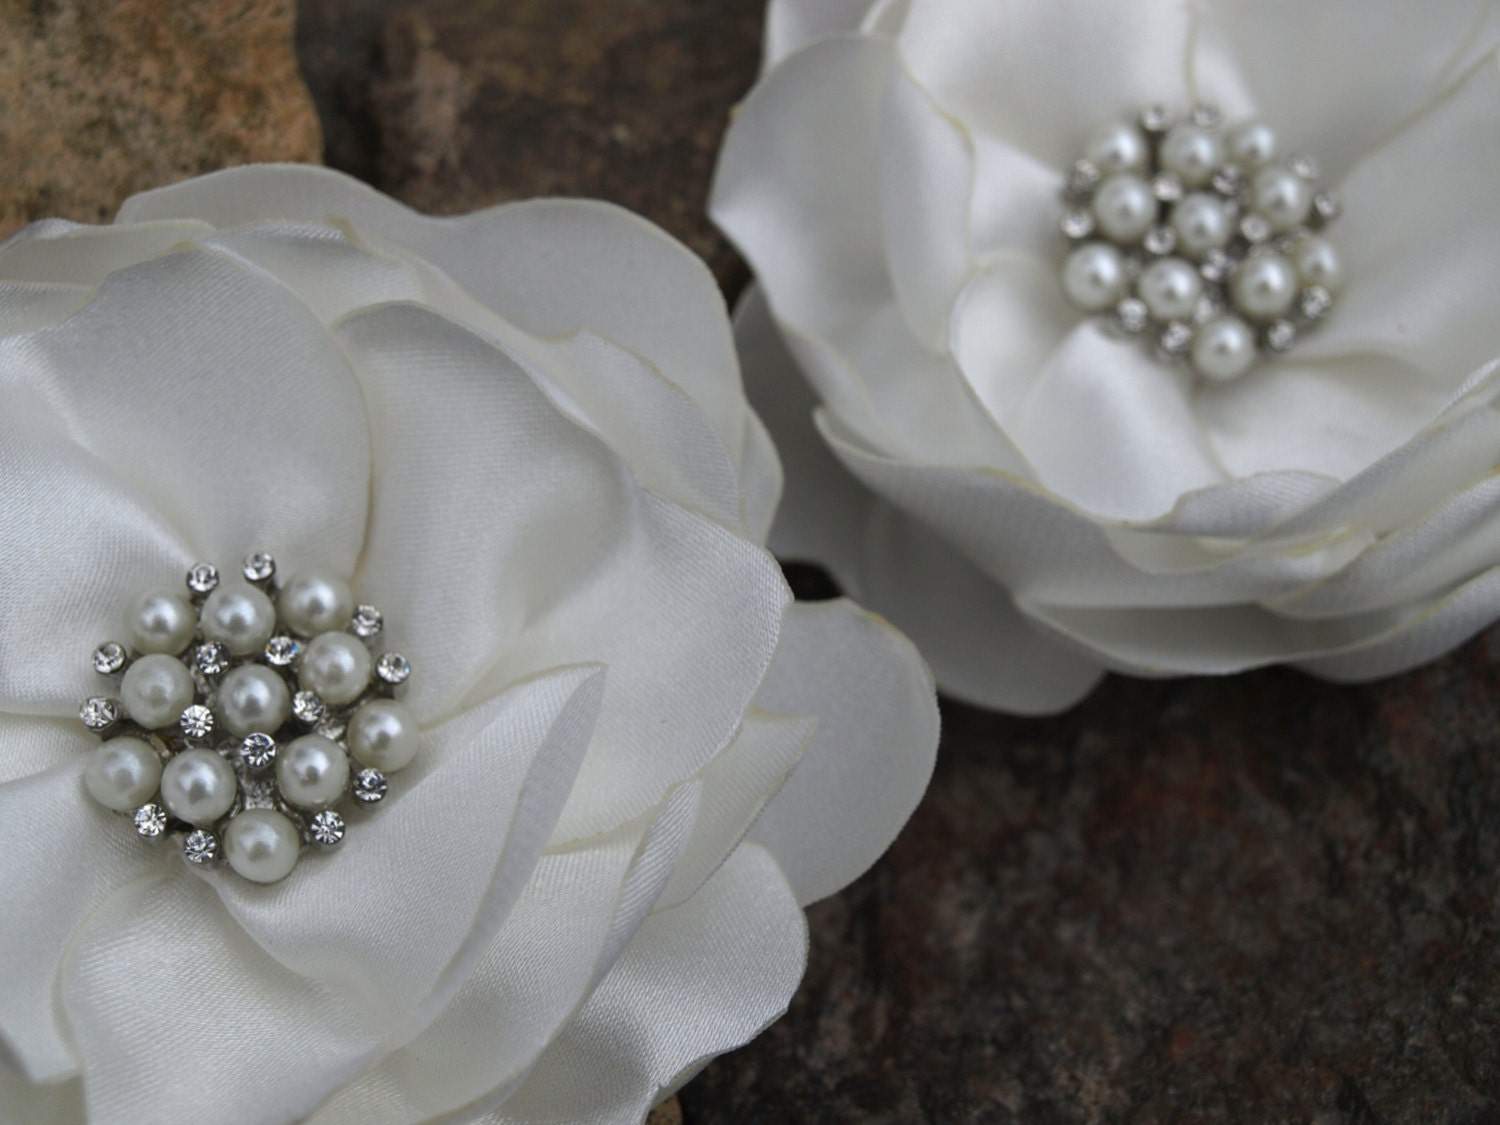 White Ivory Cream Colored Flower Hair Pins Brooches Set